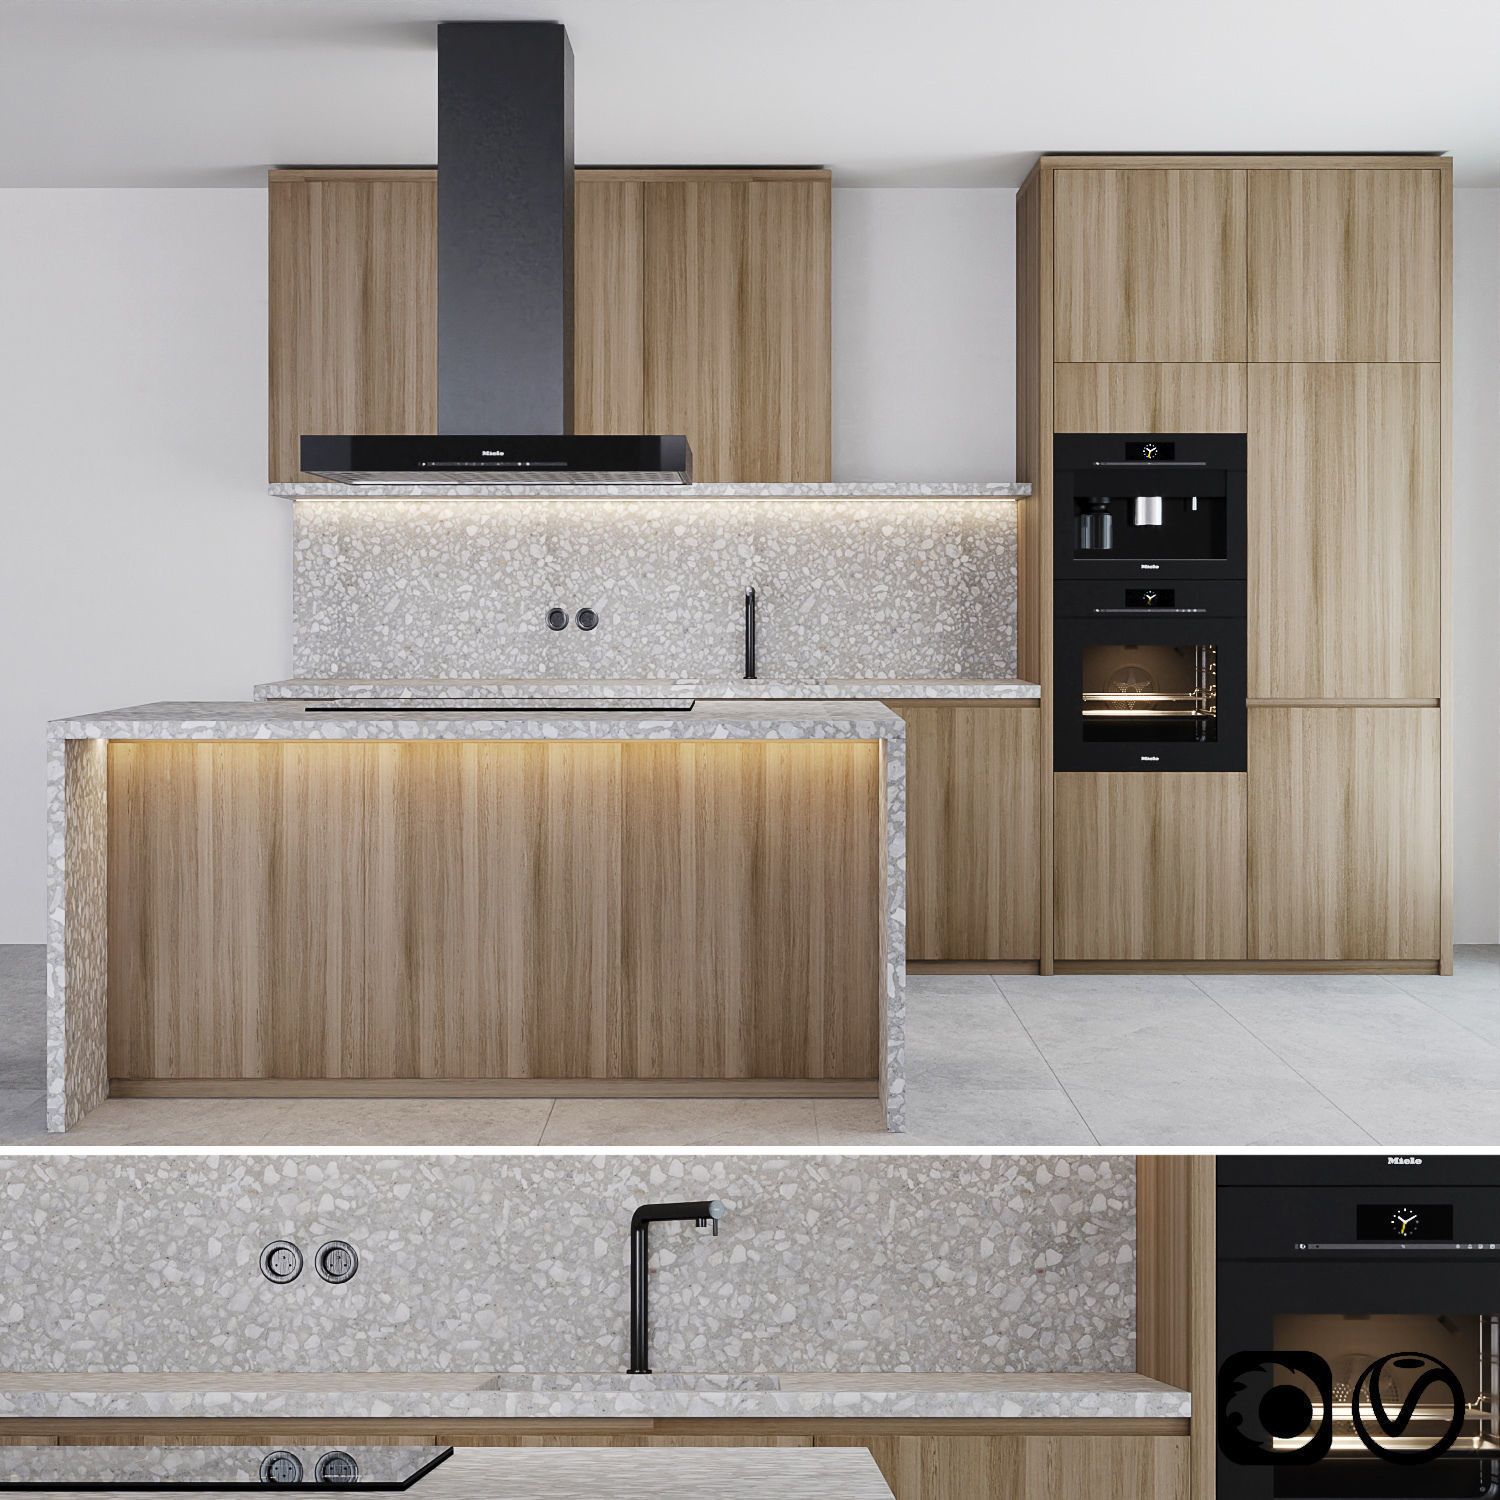 Modern kitchen with island and Miele appliance